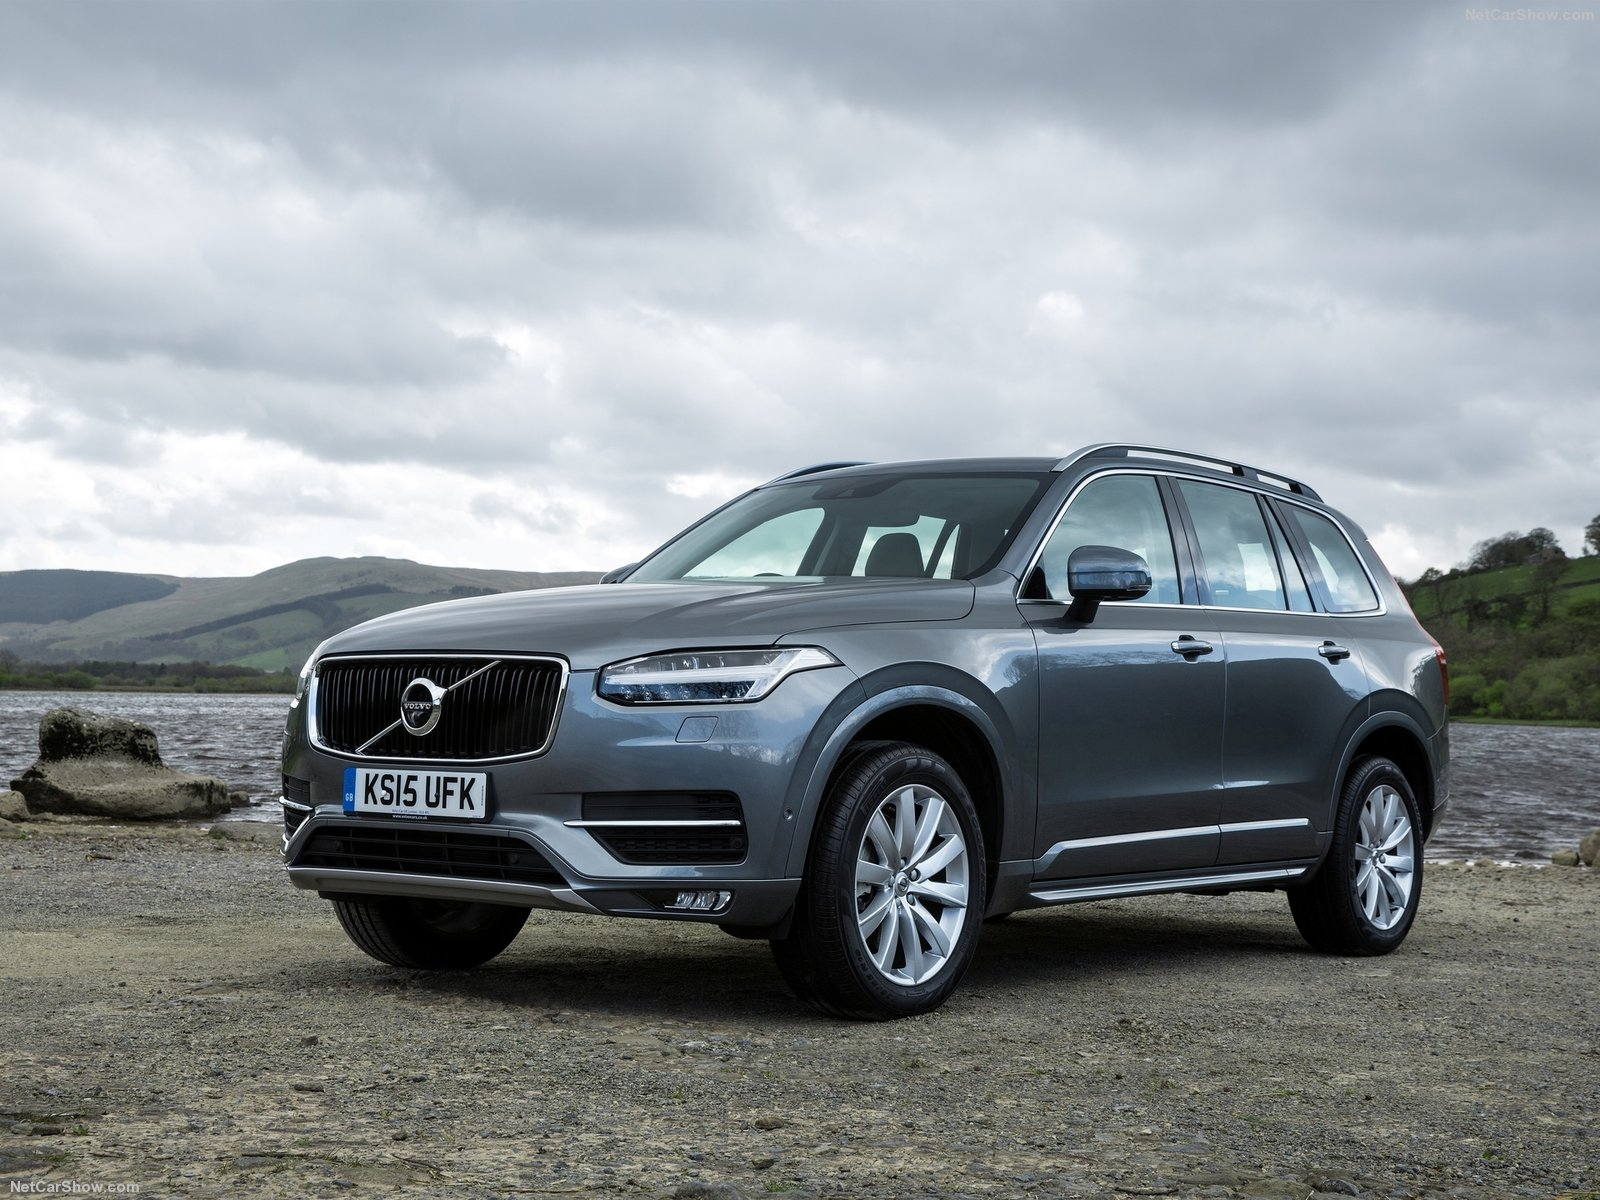 volvo xc90 uk version photos photogallery with 180 pics. Black Bedroom Furniture Sets. Home Design Ideas